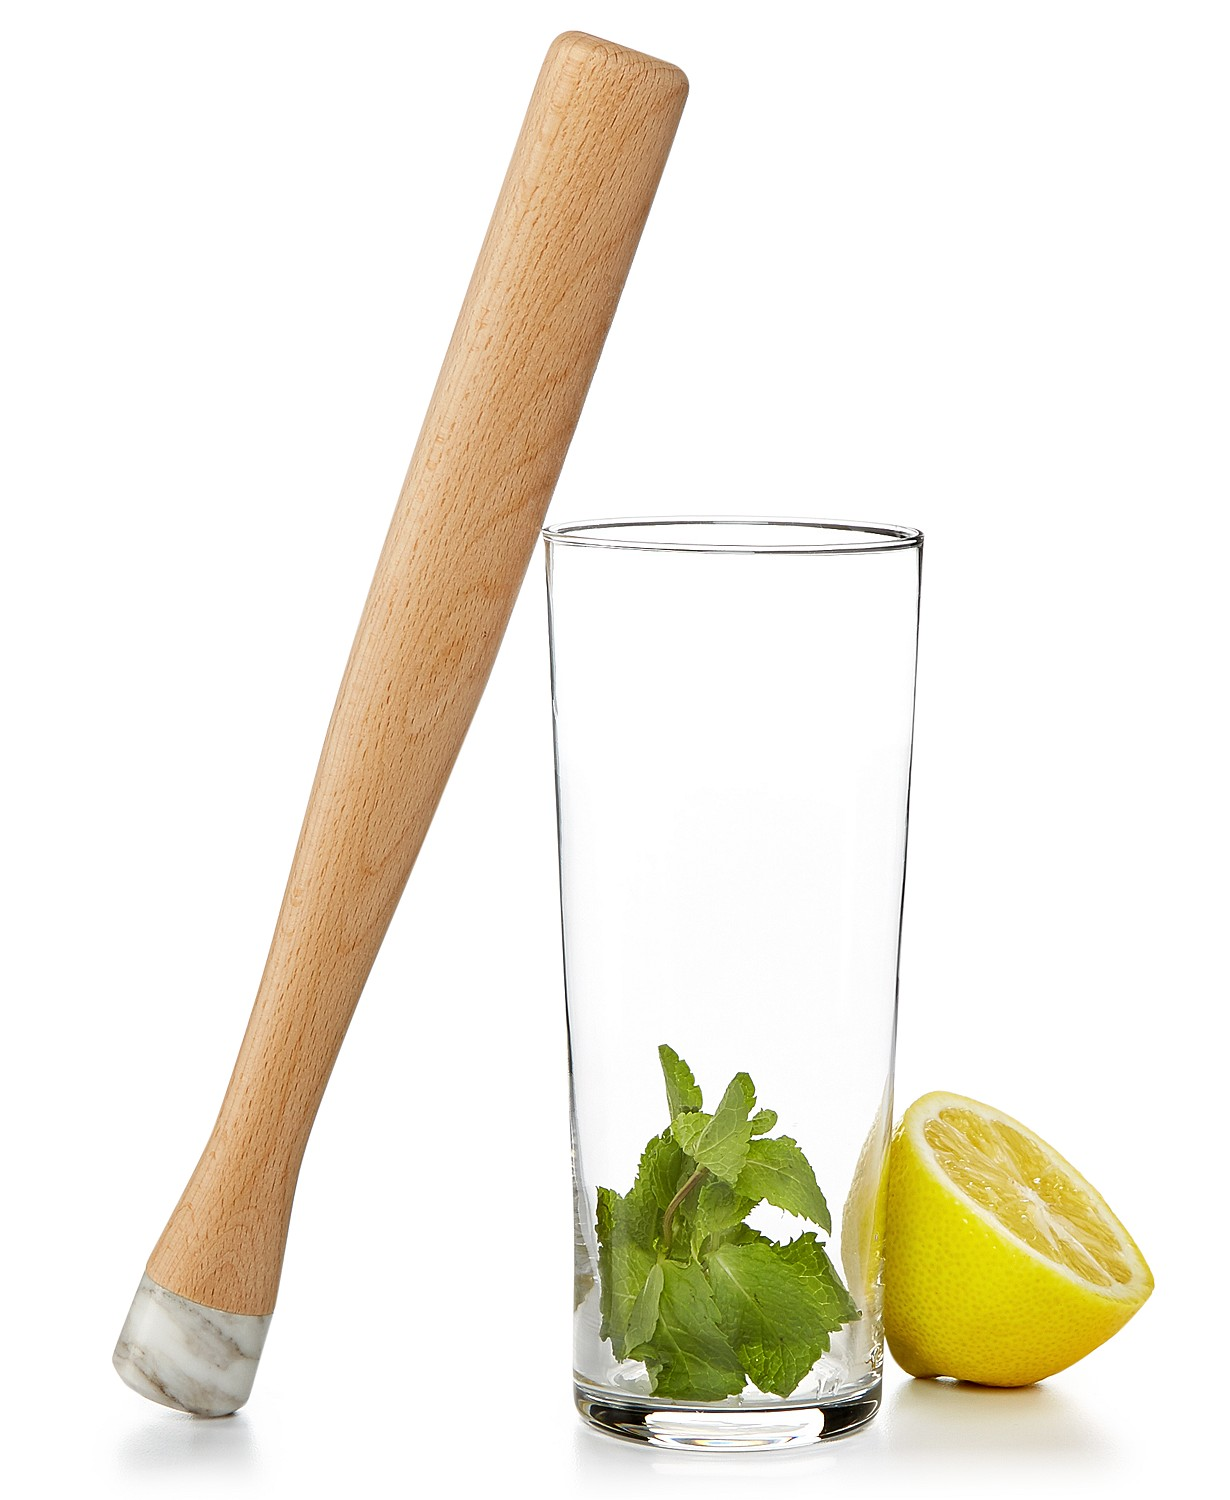 muddler and glass with mint and half a lemon